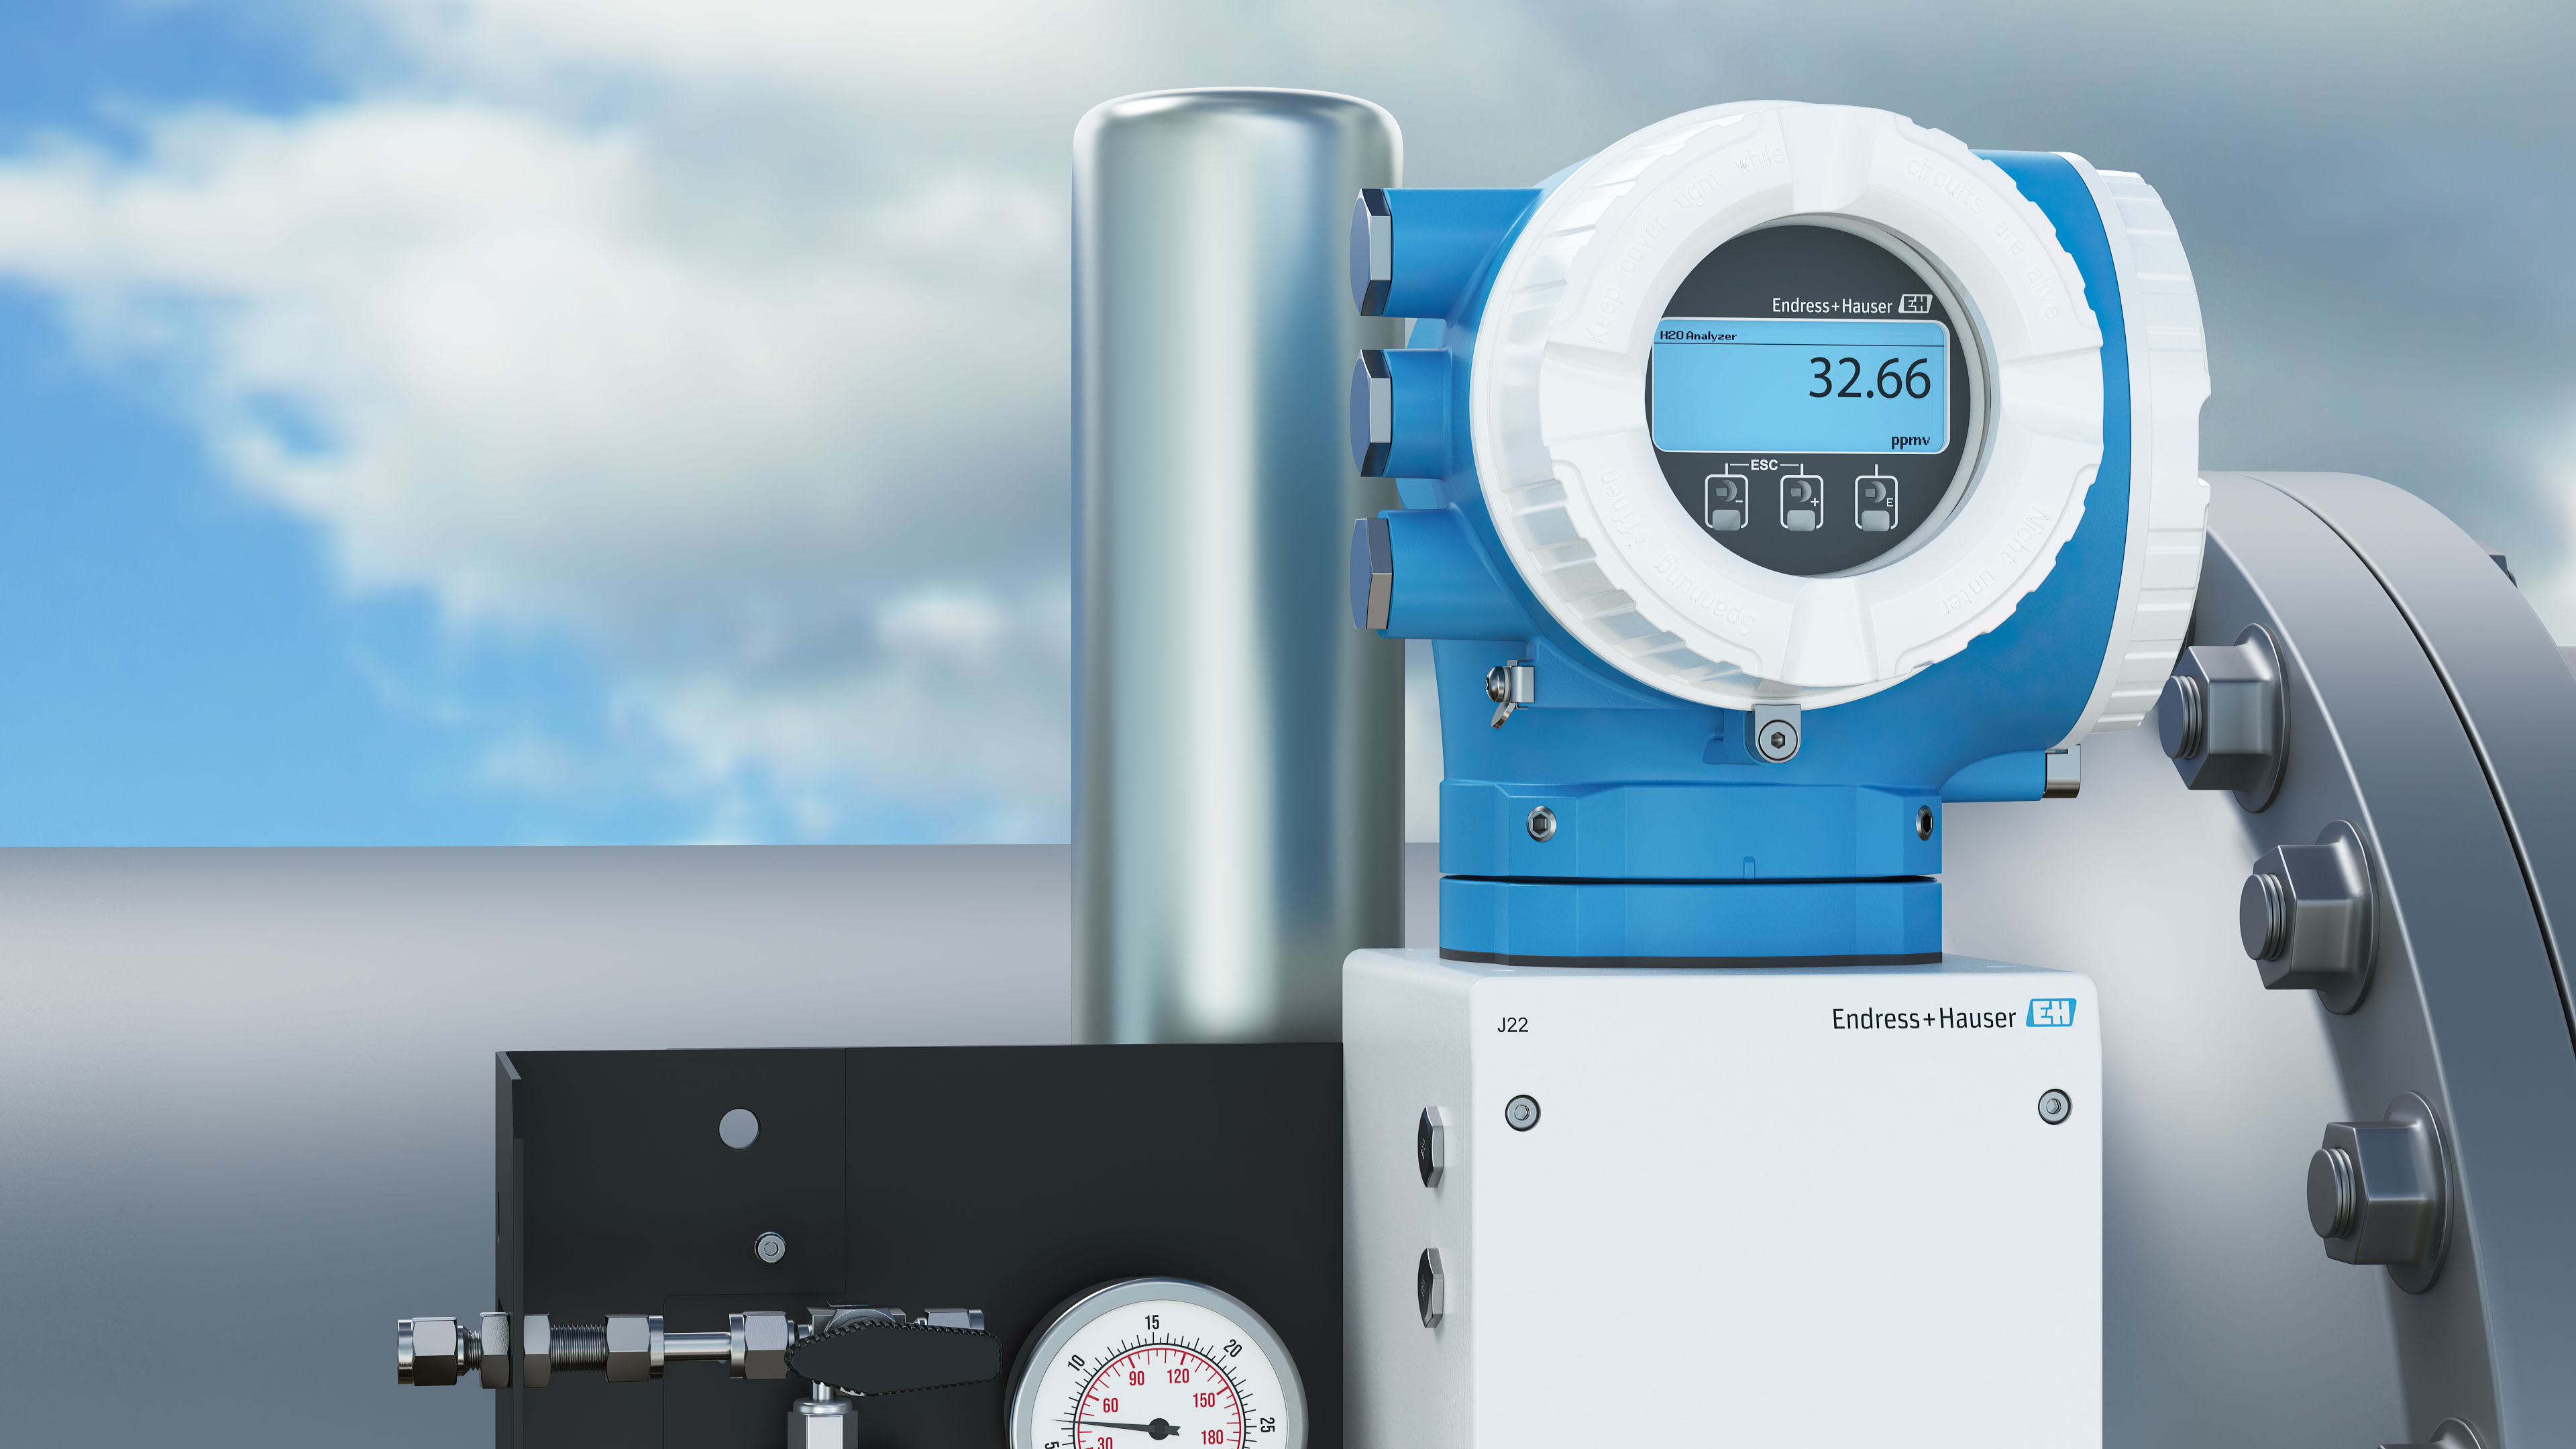 SpectraSensor J22 Gas Analyzer with pipeline and clouds in the background